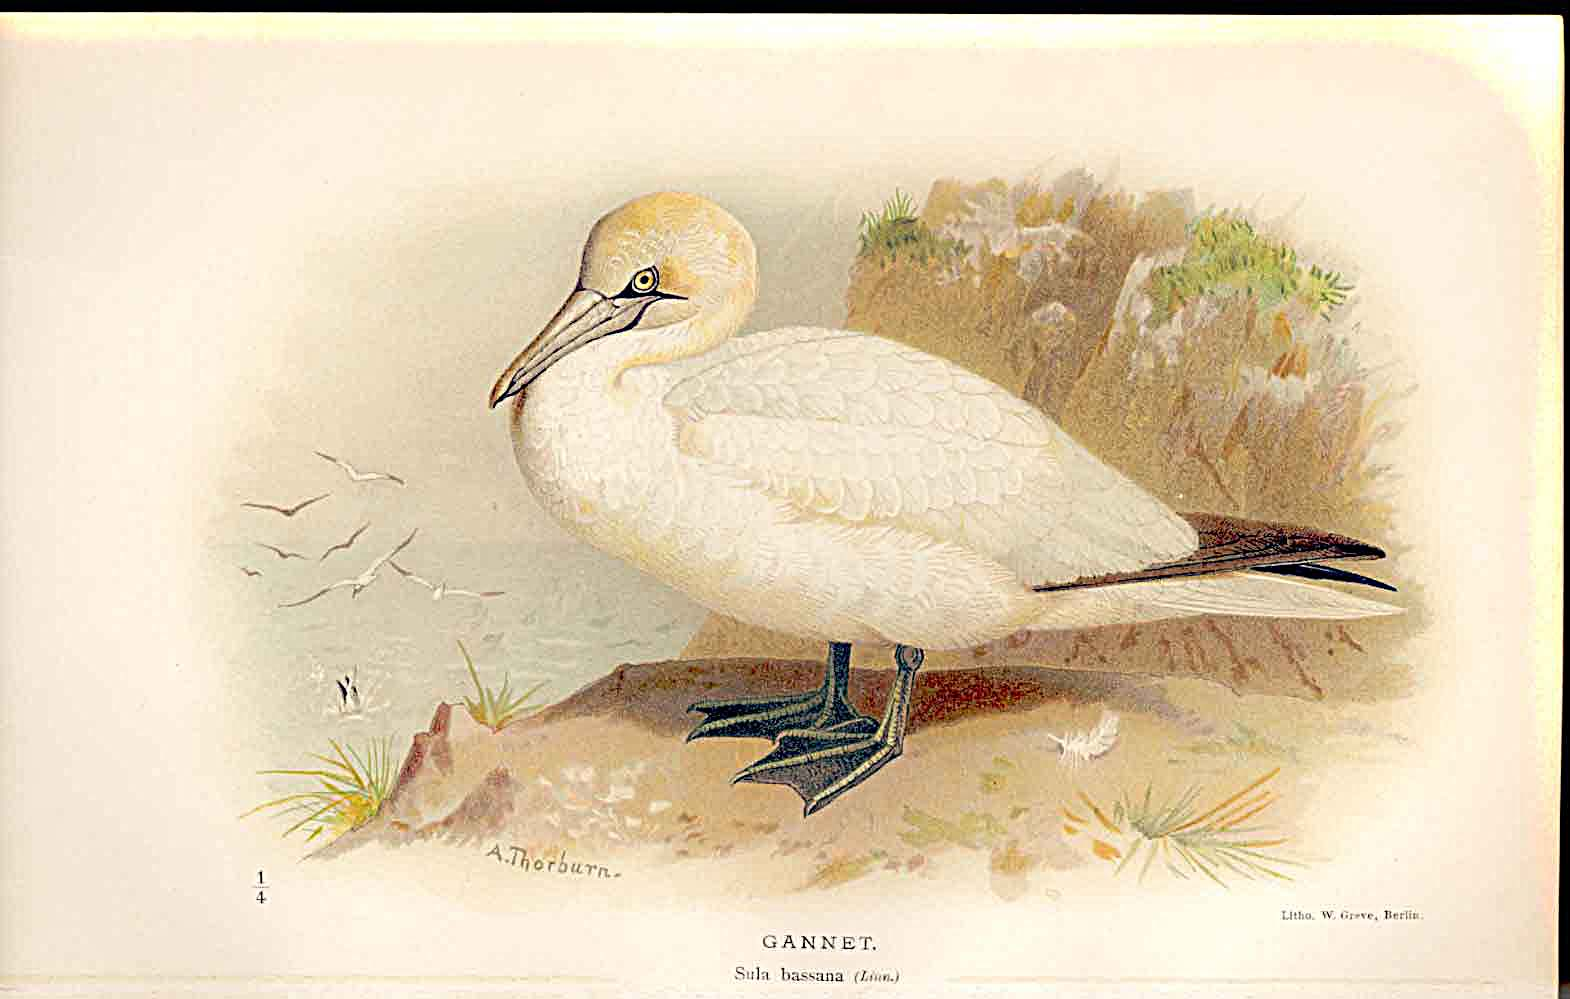 Print Gannet Lilfords Birds 1885-97 By A Thorburn 039011 Old Original